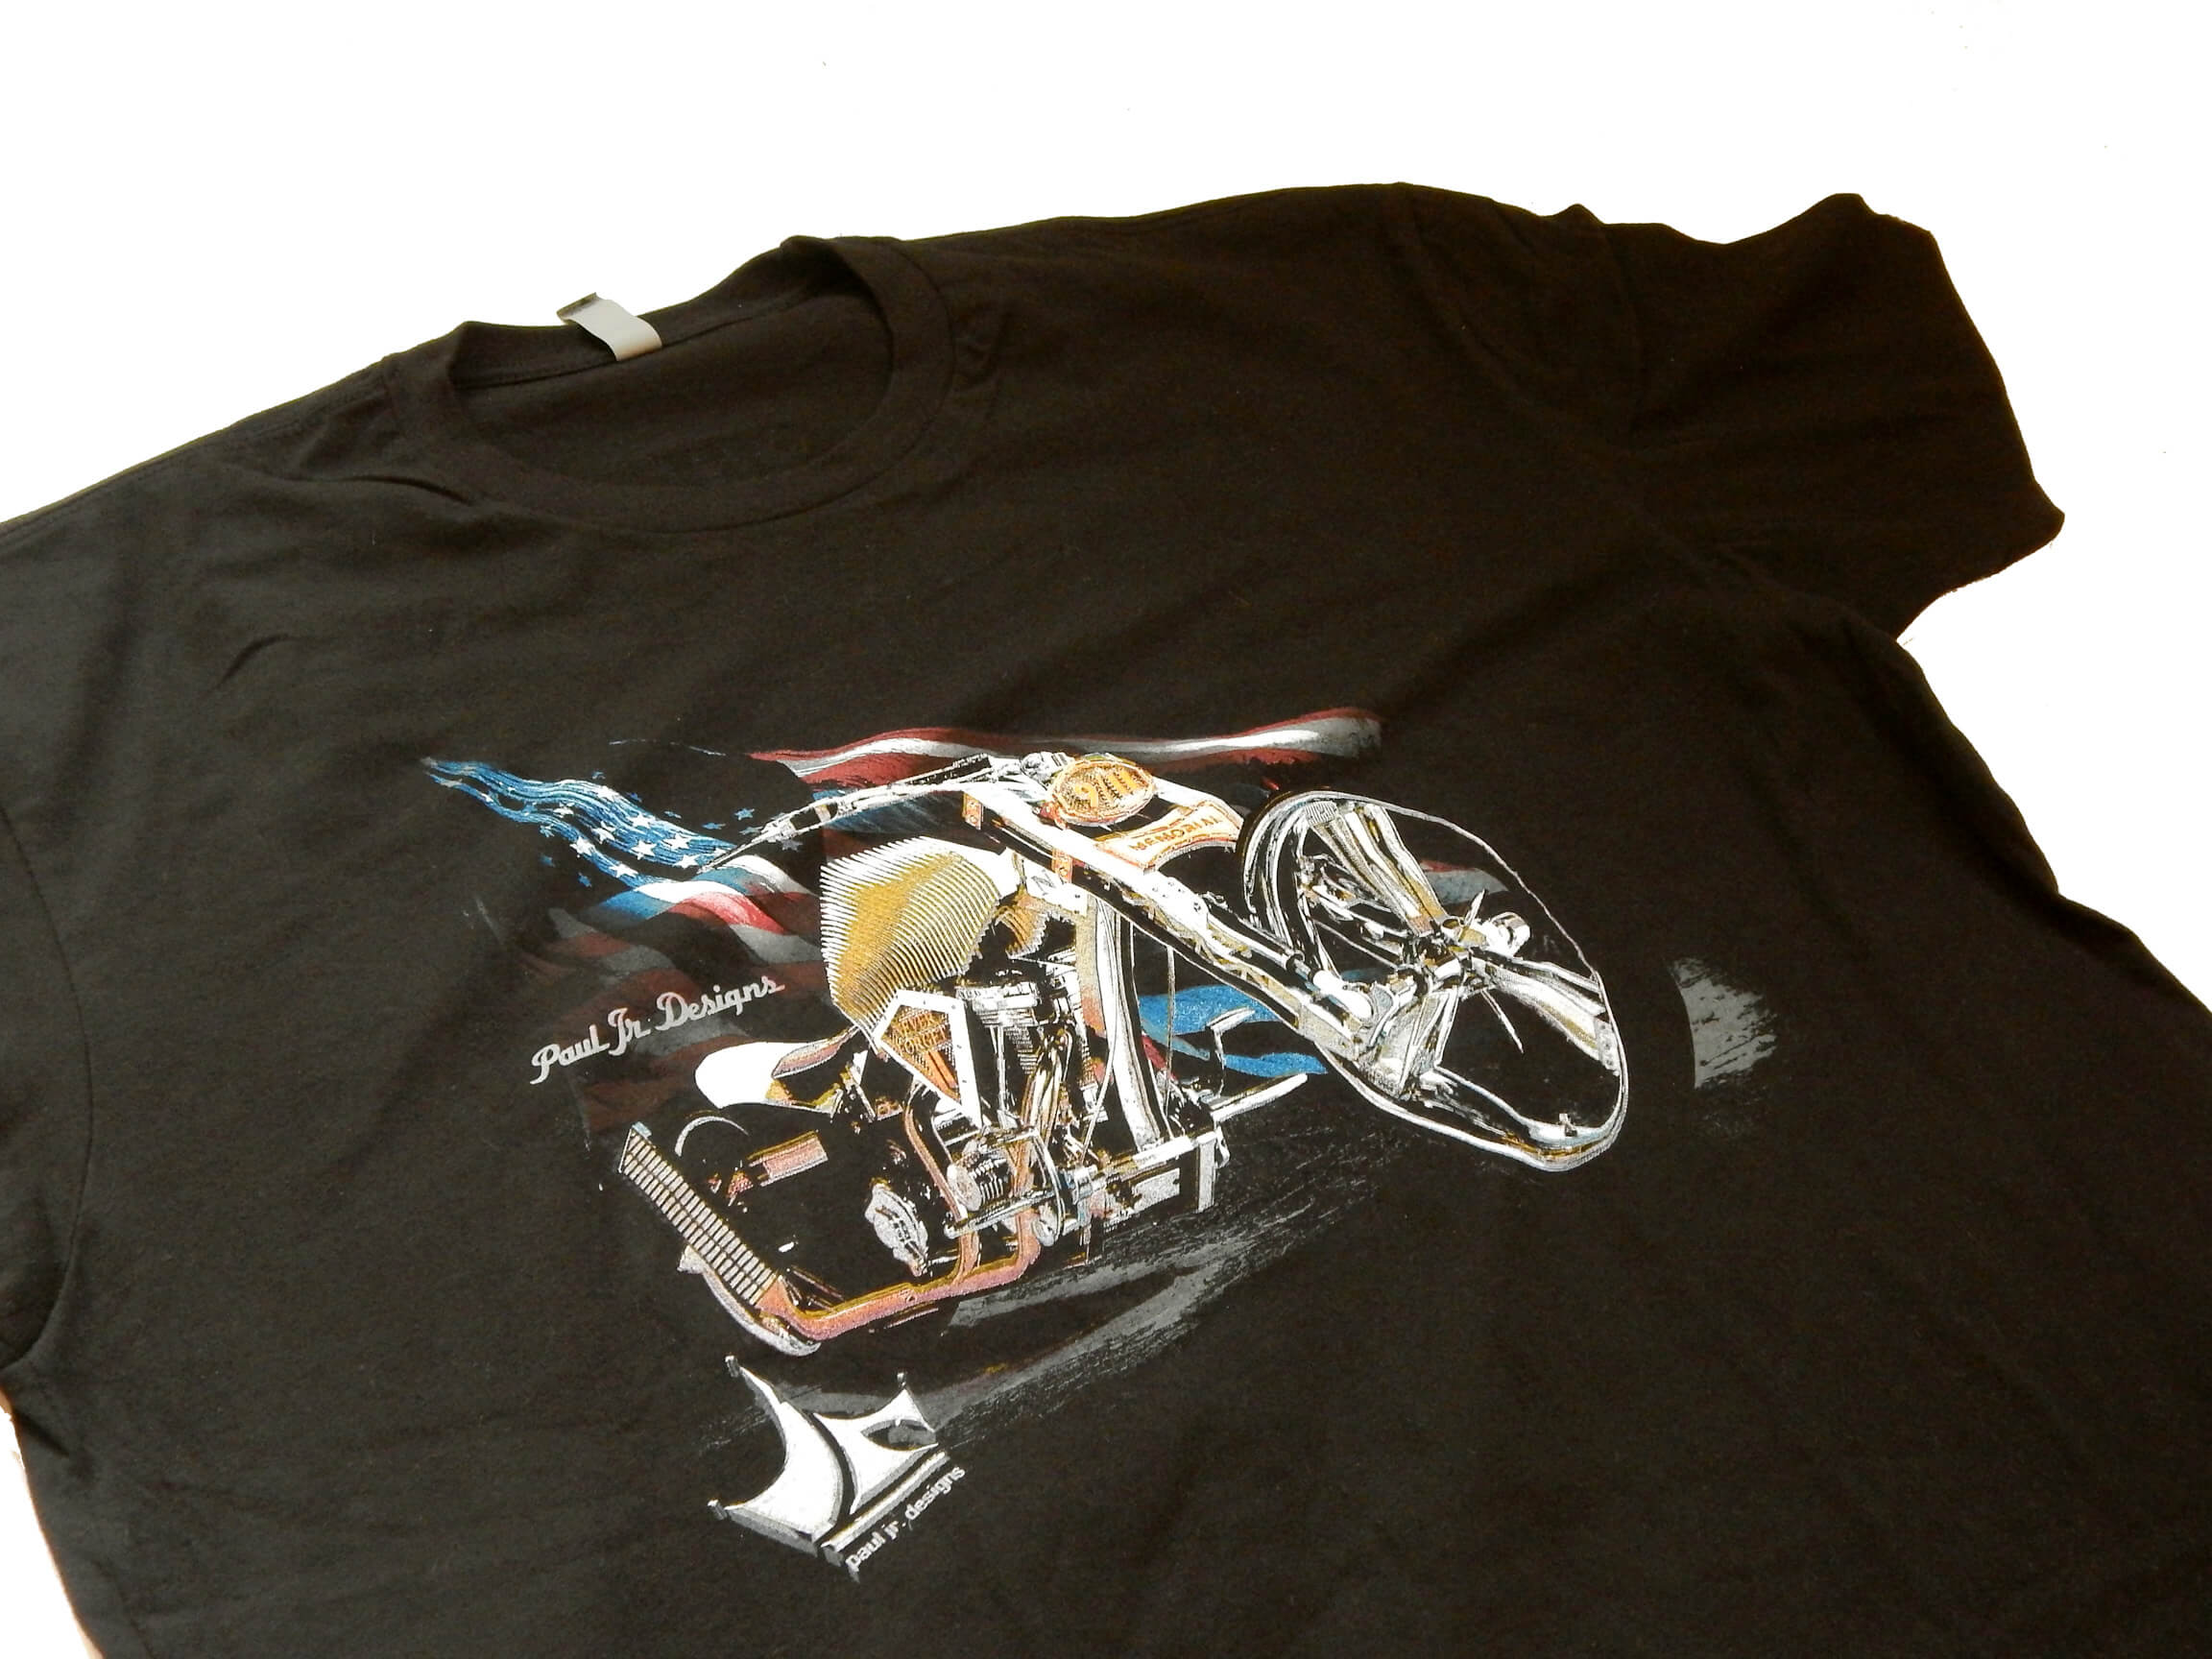 Screen Printed Tee Shirt from Prestige Graphic in Middletown, NY